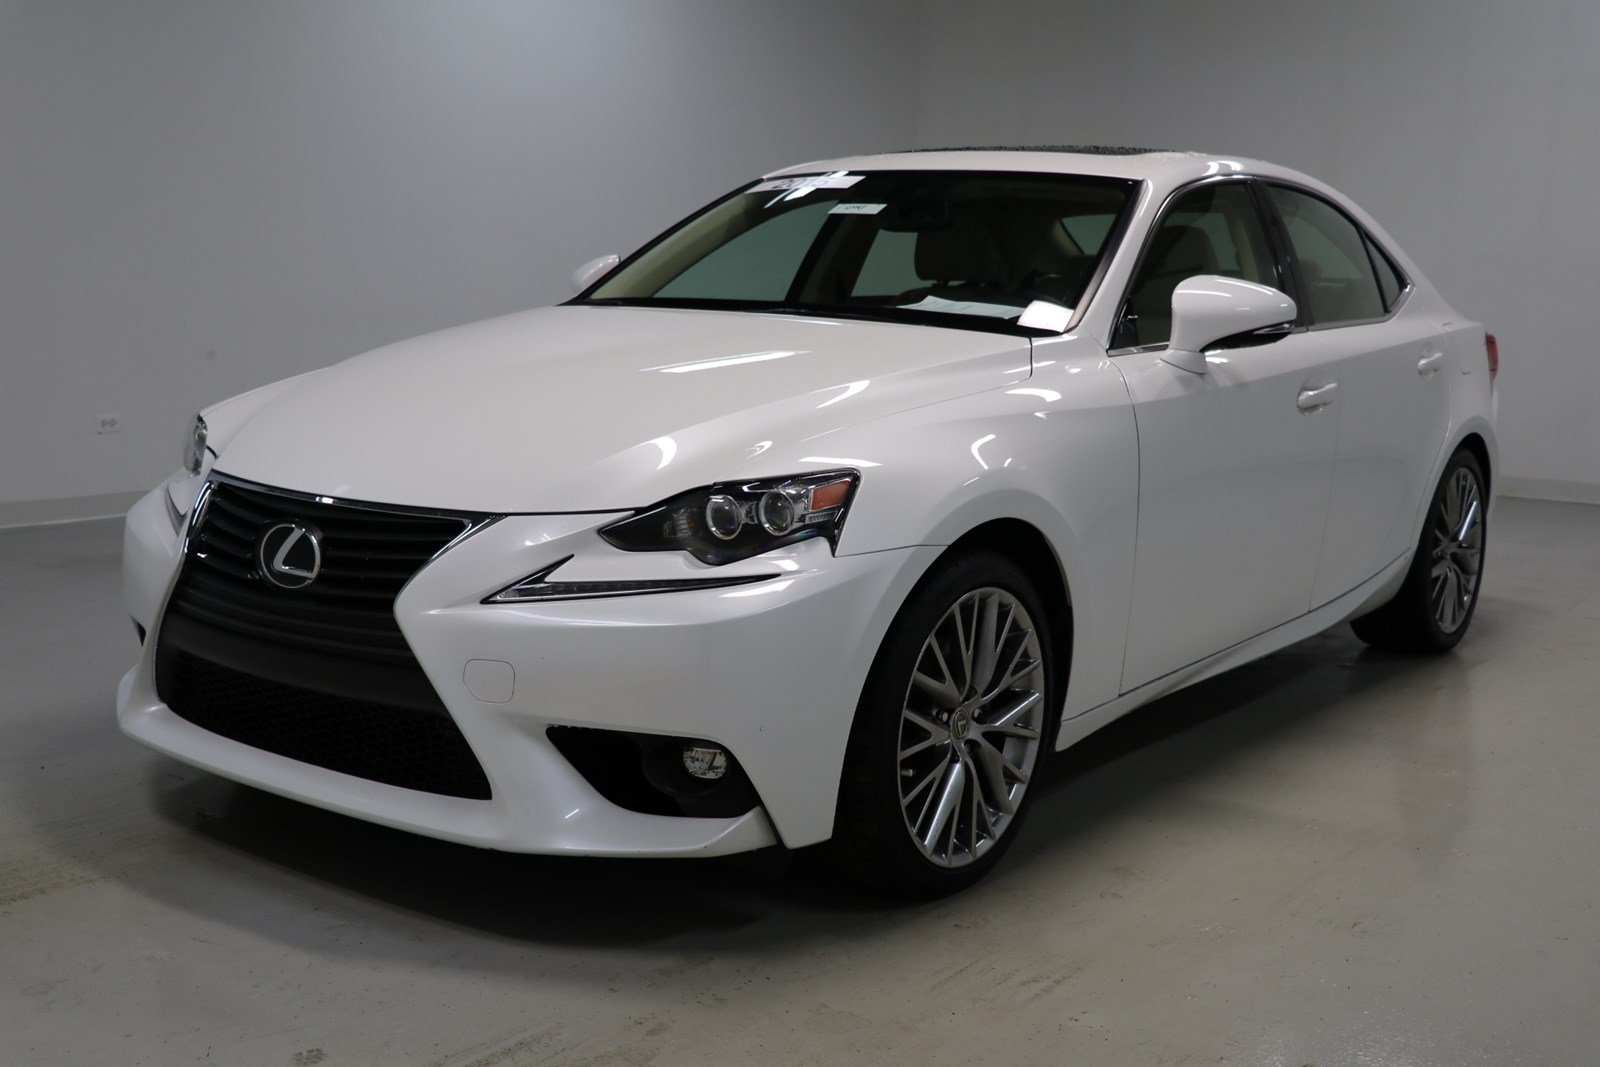 Pre Owned 2015 Lexus IS 250 4dr Car in Elmhurst J2514P